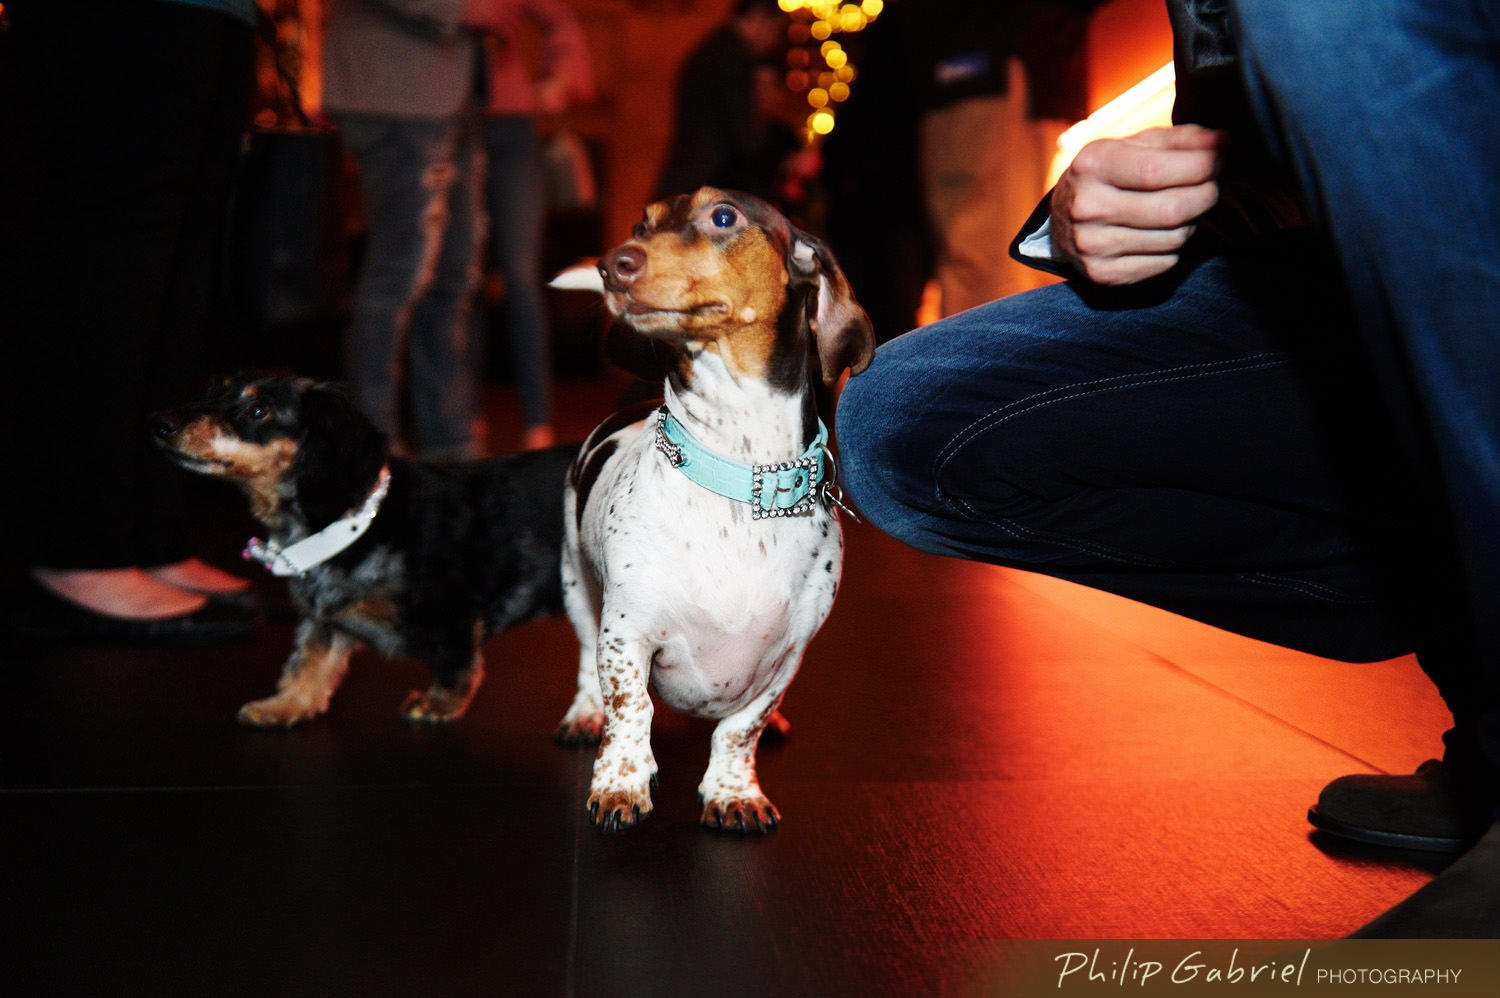 Contact Philip Gabriel Photography Today For More Information On Our Event Pet Packages